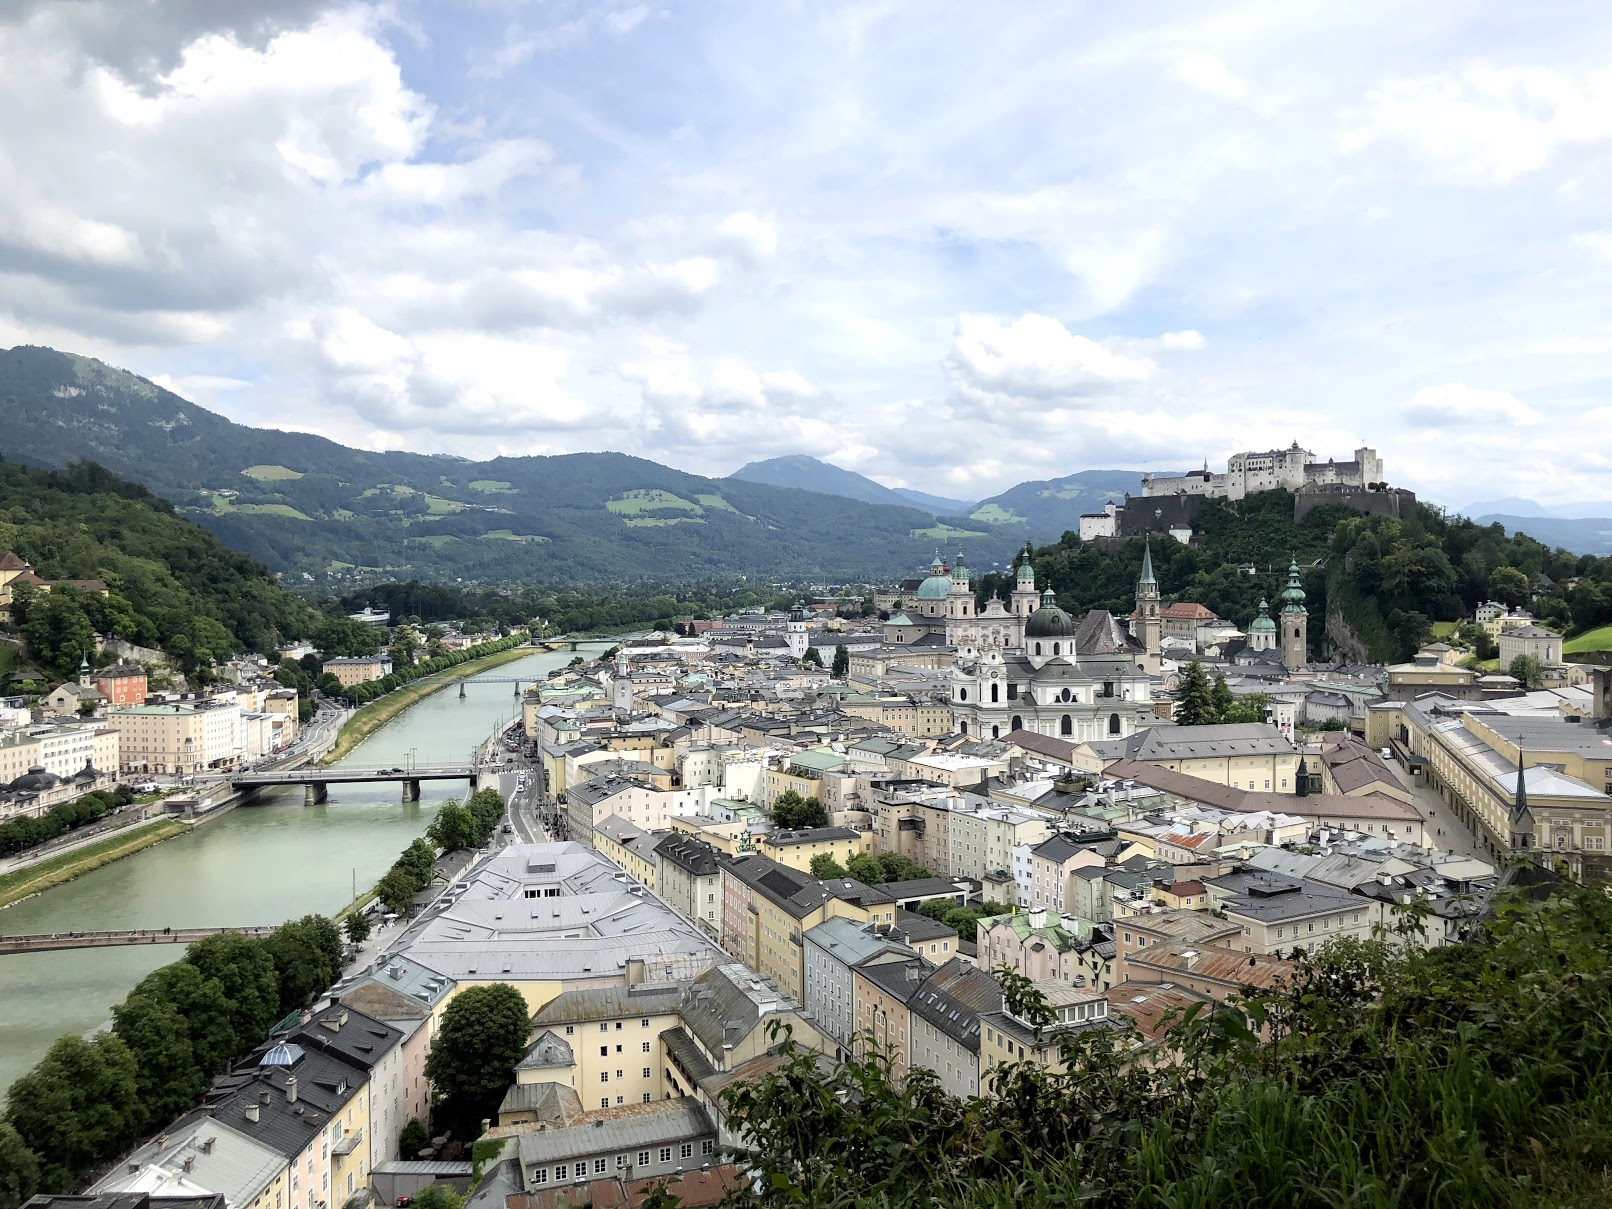 Overlooking Salzburg Austria from the castle